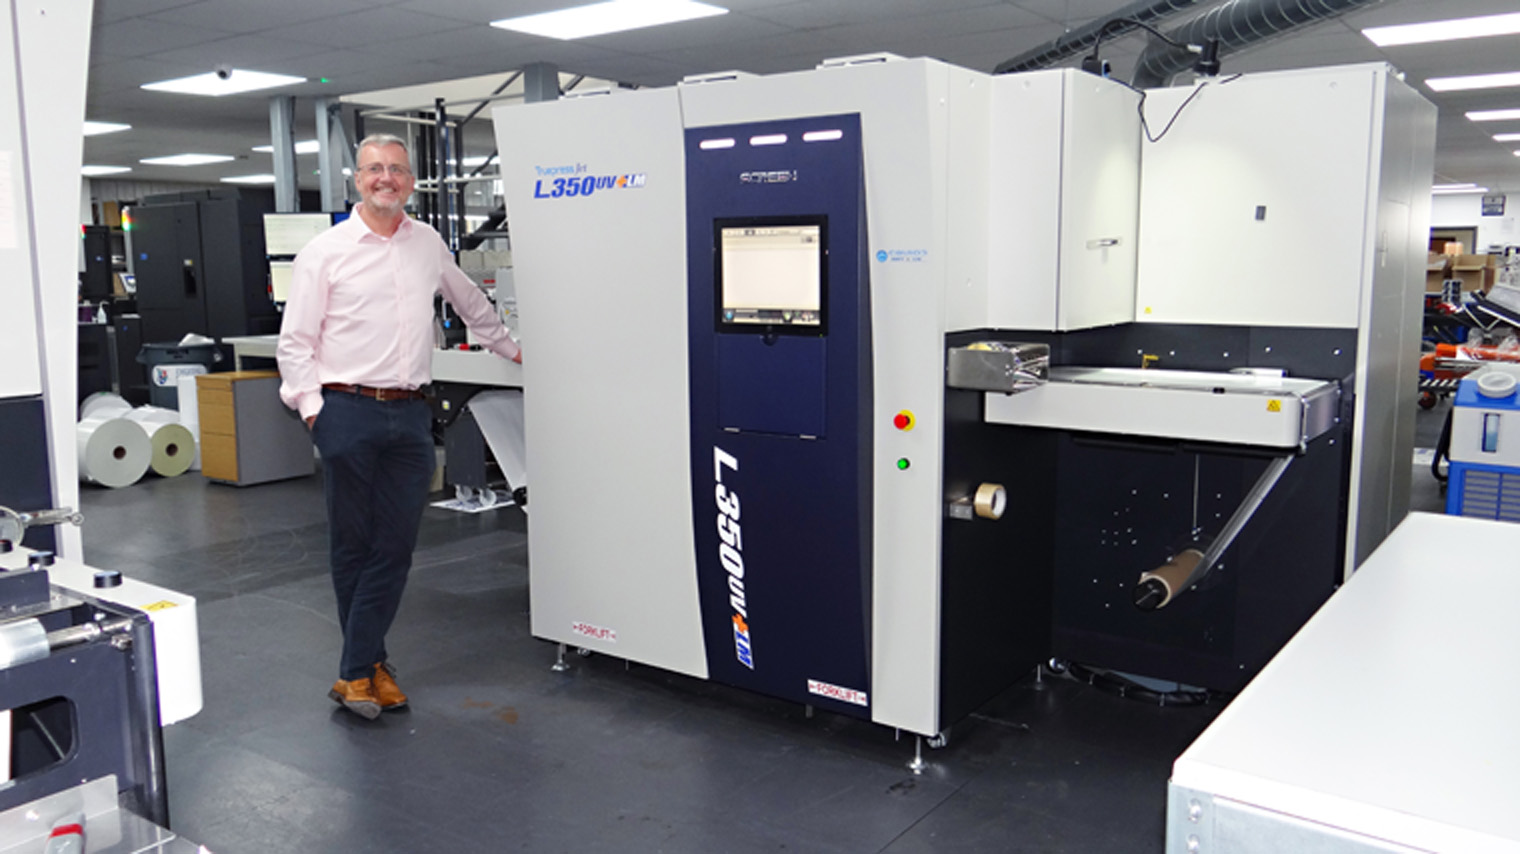 Image from BAKER LABELS ENHANCES SERVICE OFFERING AND BOOSTS PRODUCTIVITY WITH INSTALLATION OF SECOND SCREEN PRESS